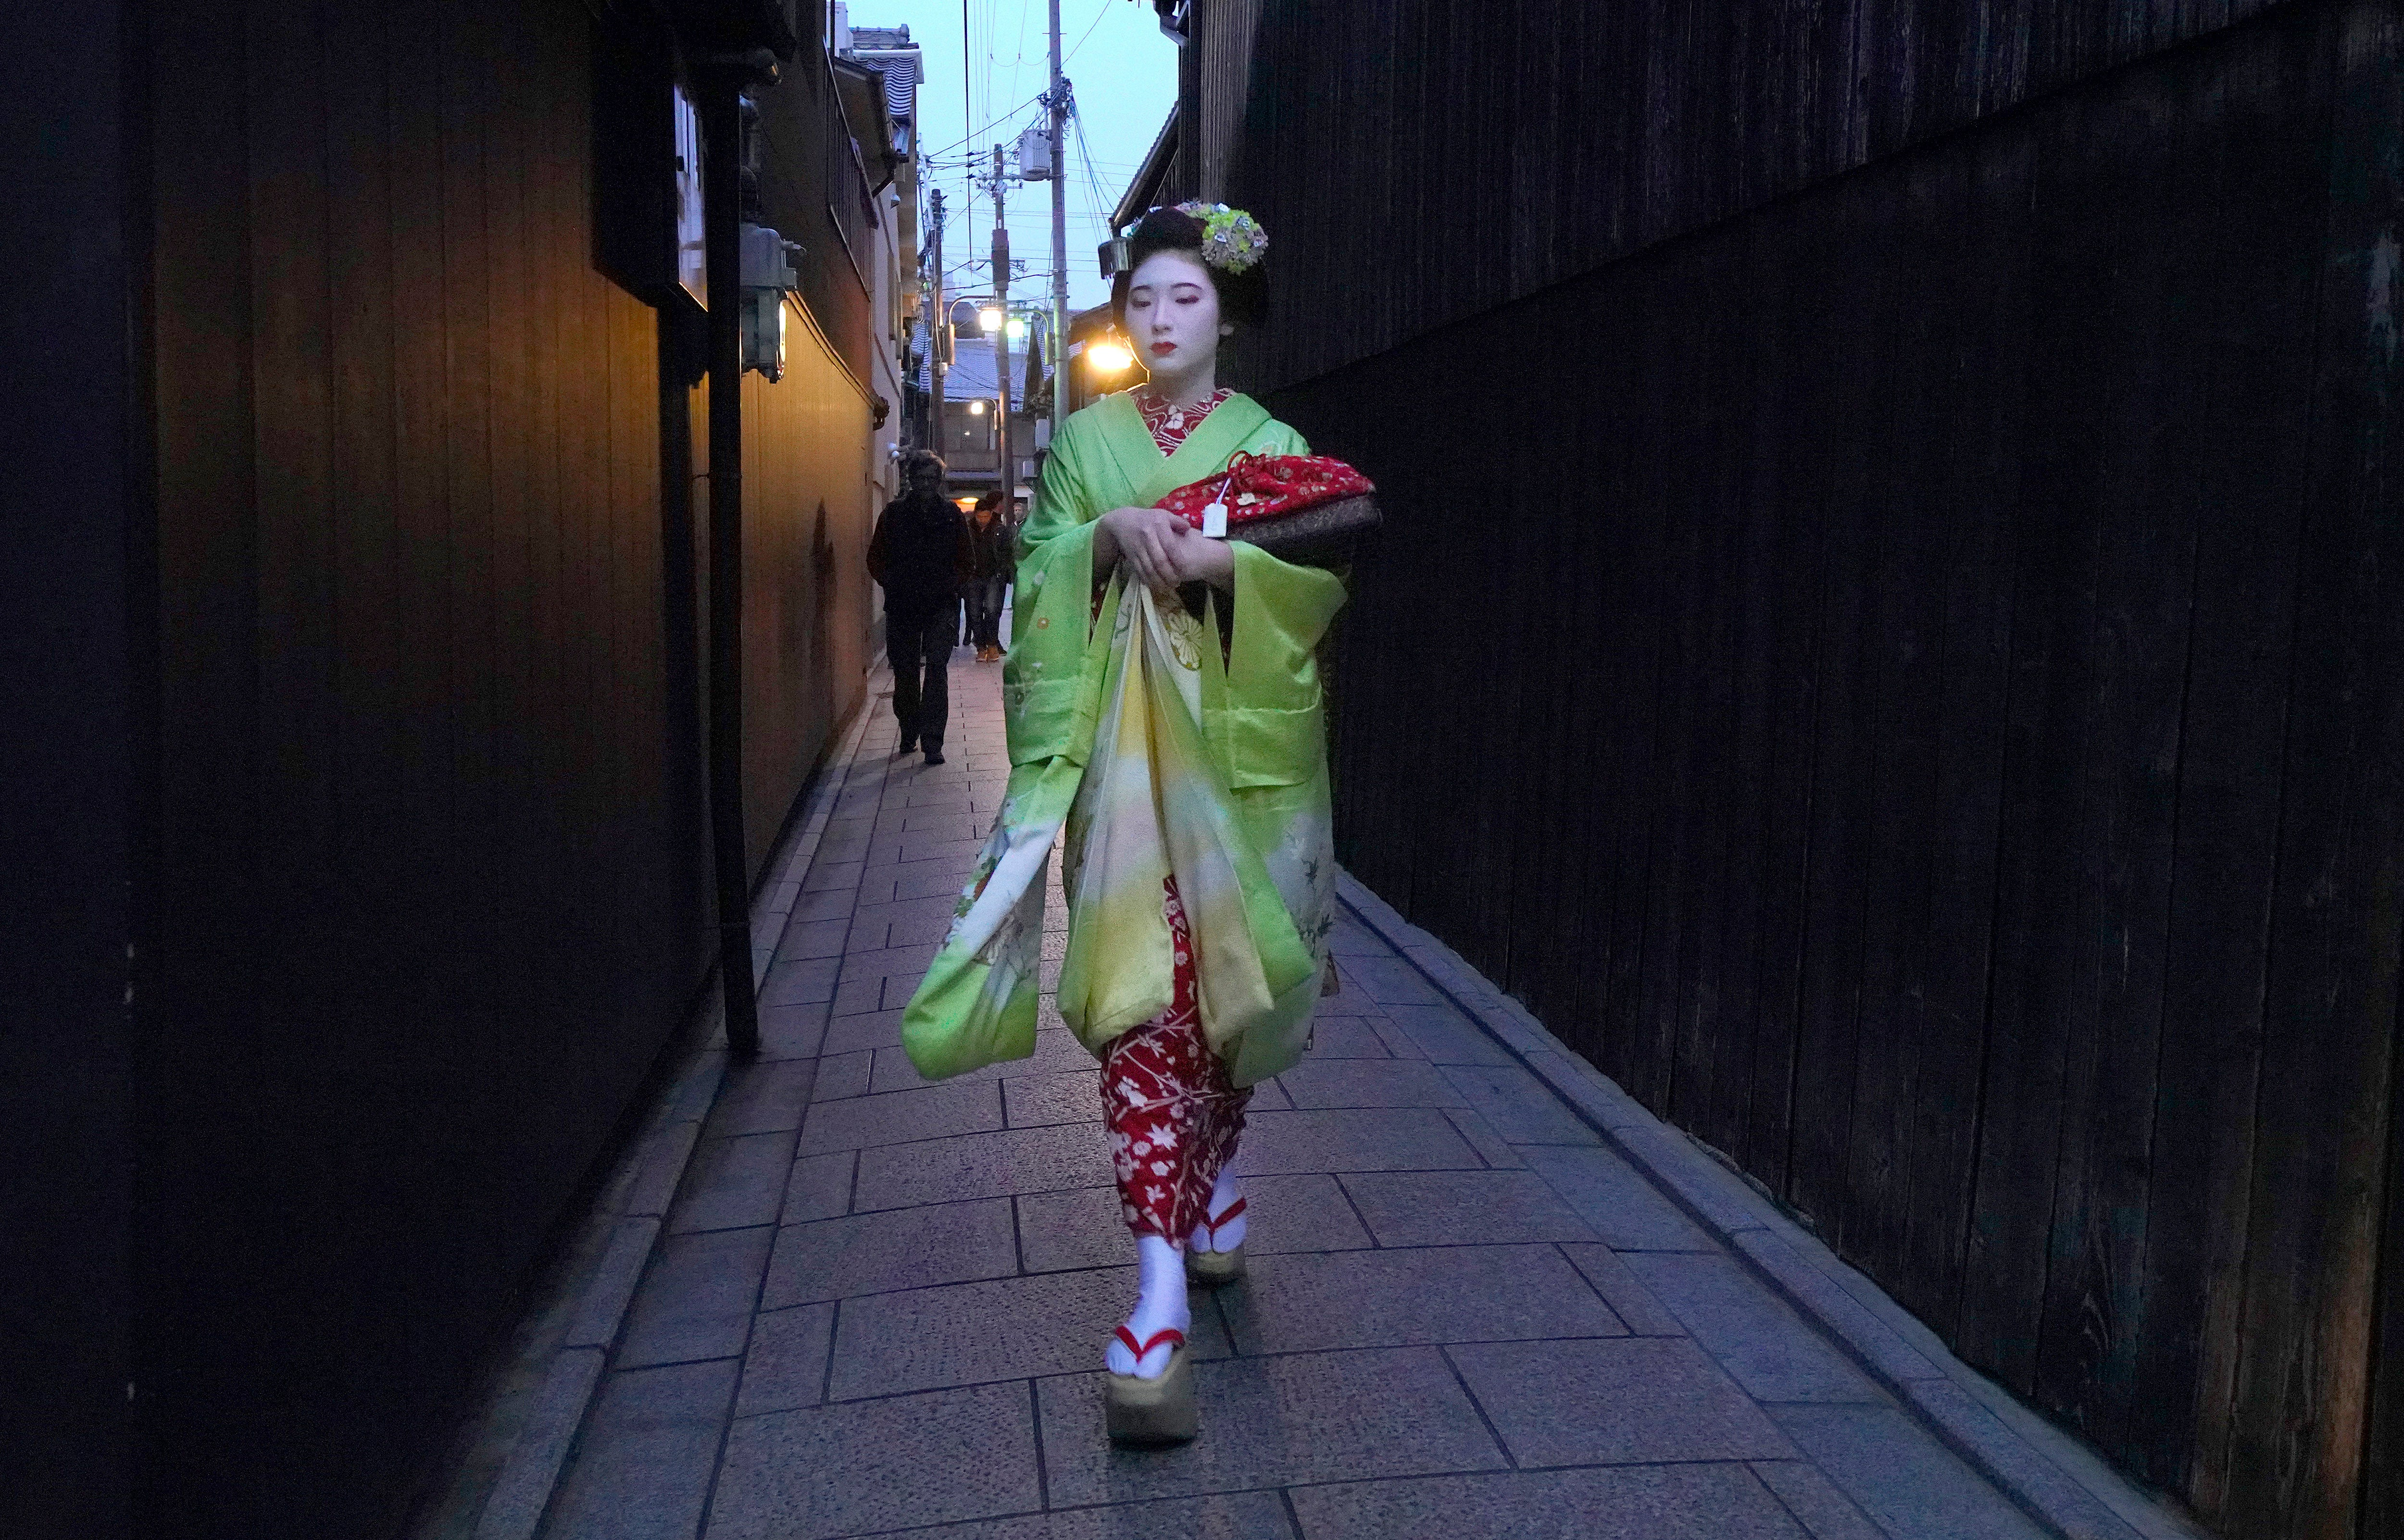 Tourists In Kyoto Are Making Geishas' Lives Difficult